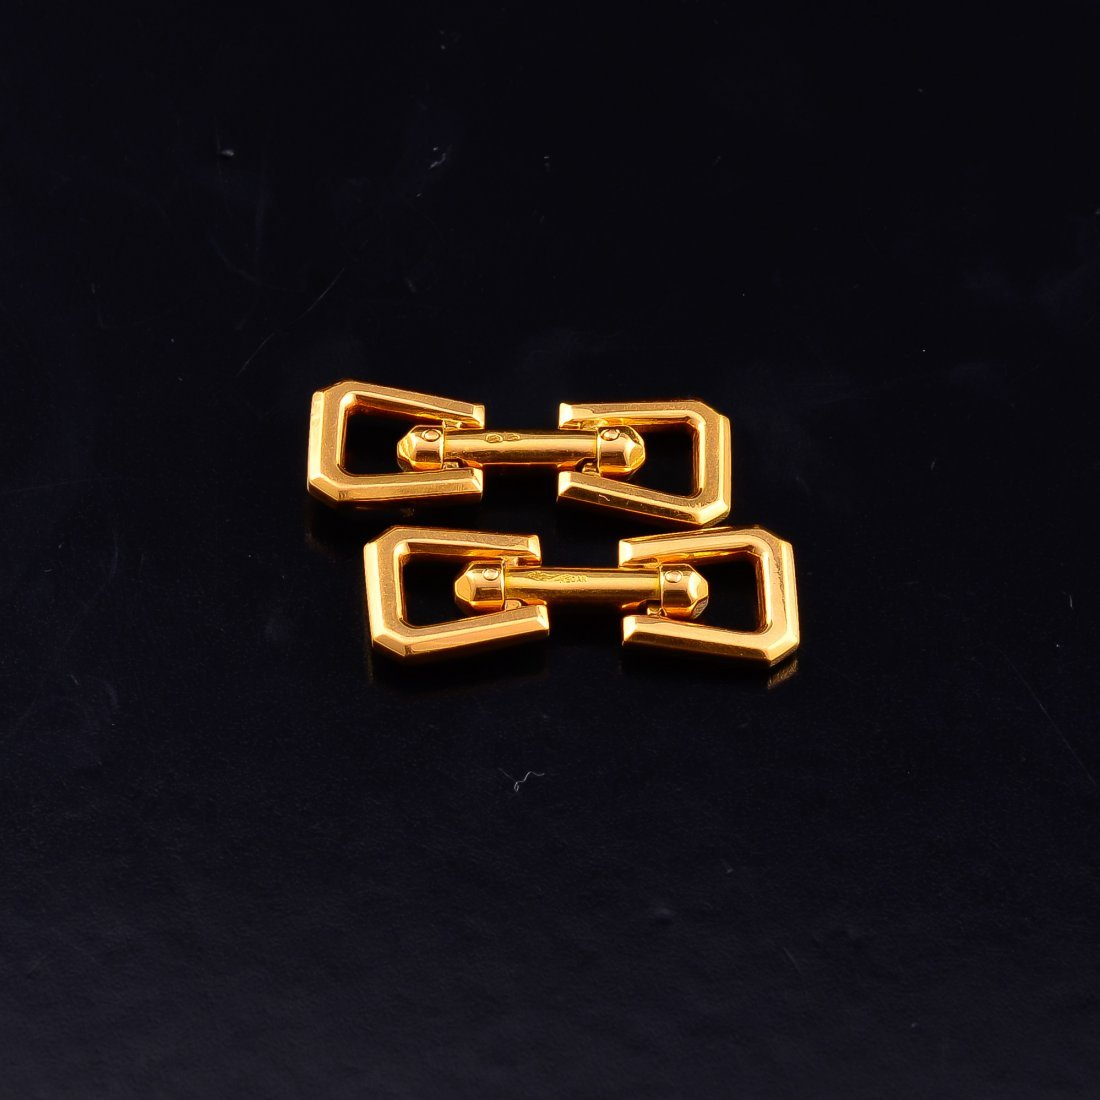 French gold cufflinks by Mecan - 4